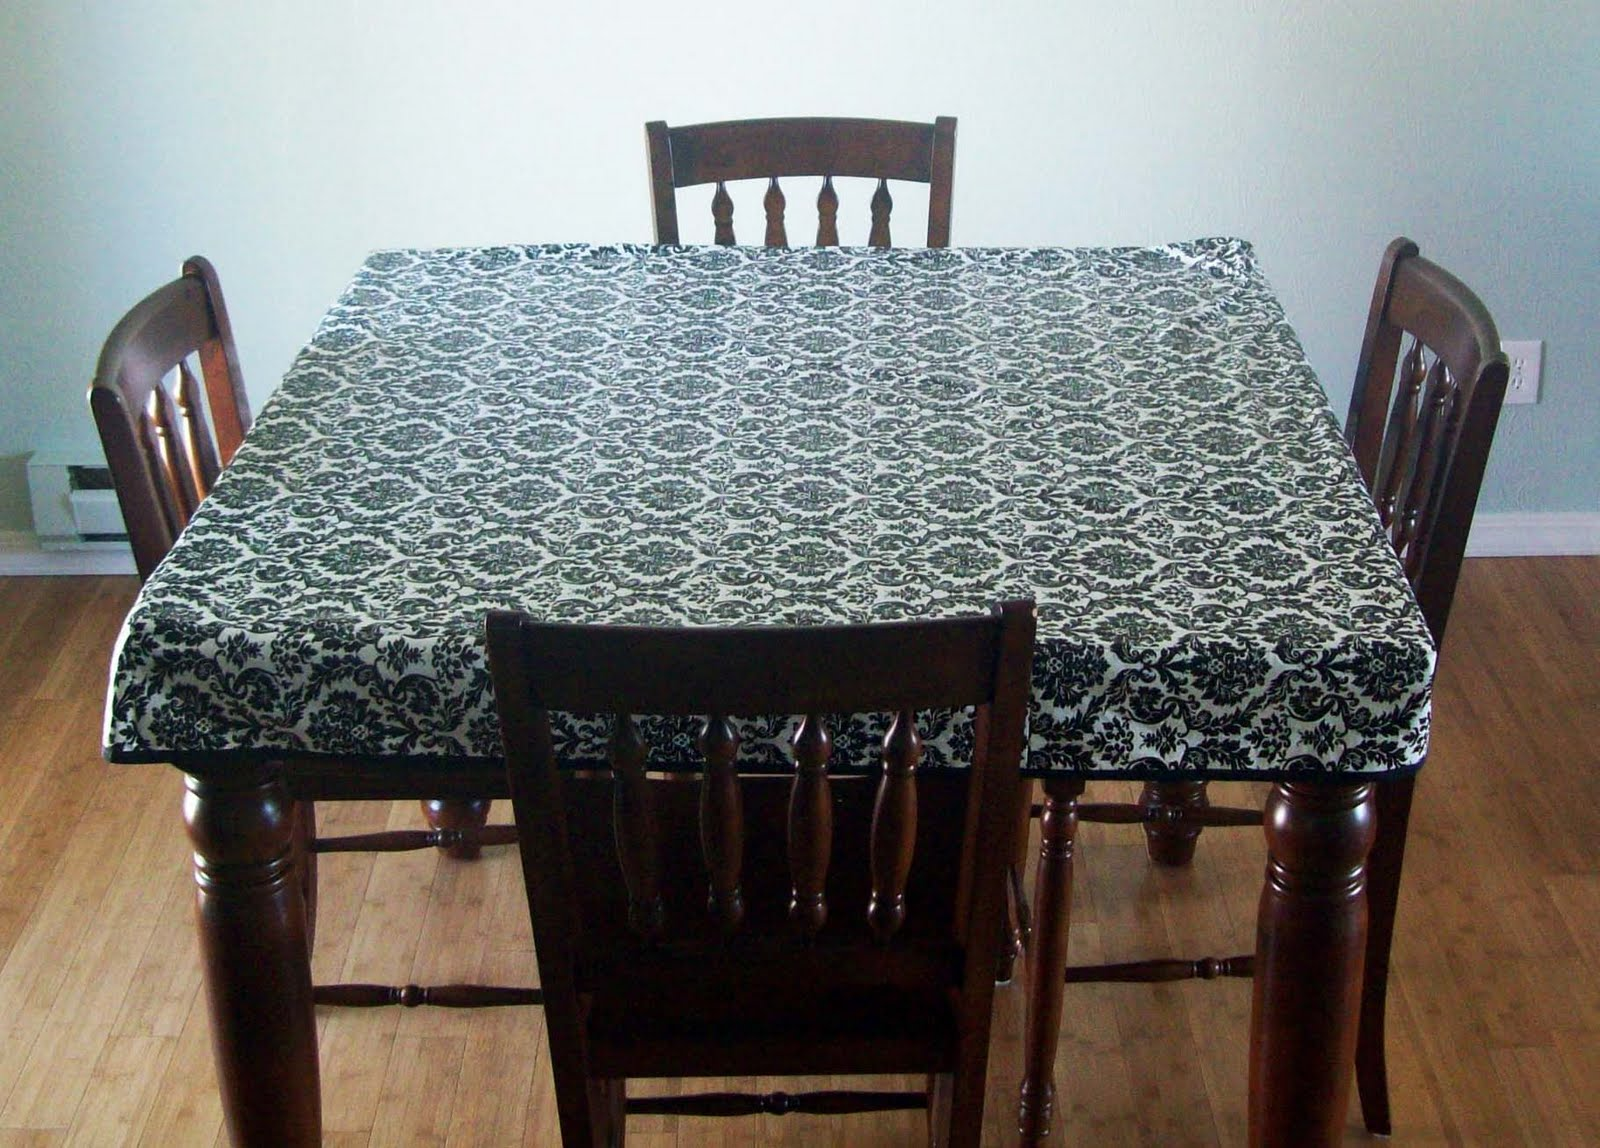 Ethnic Floral Prints On Table Cloths